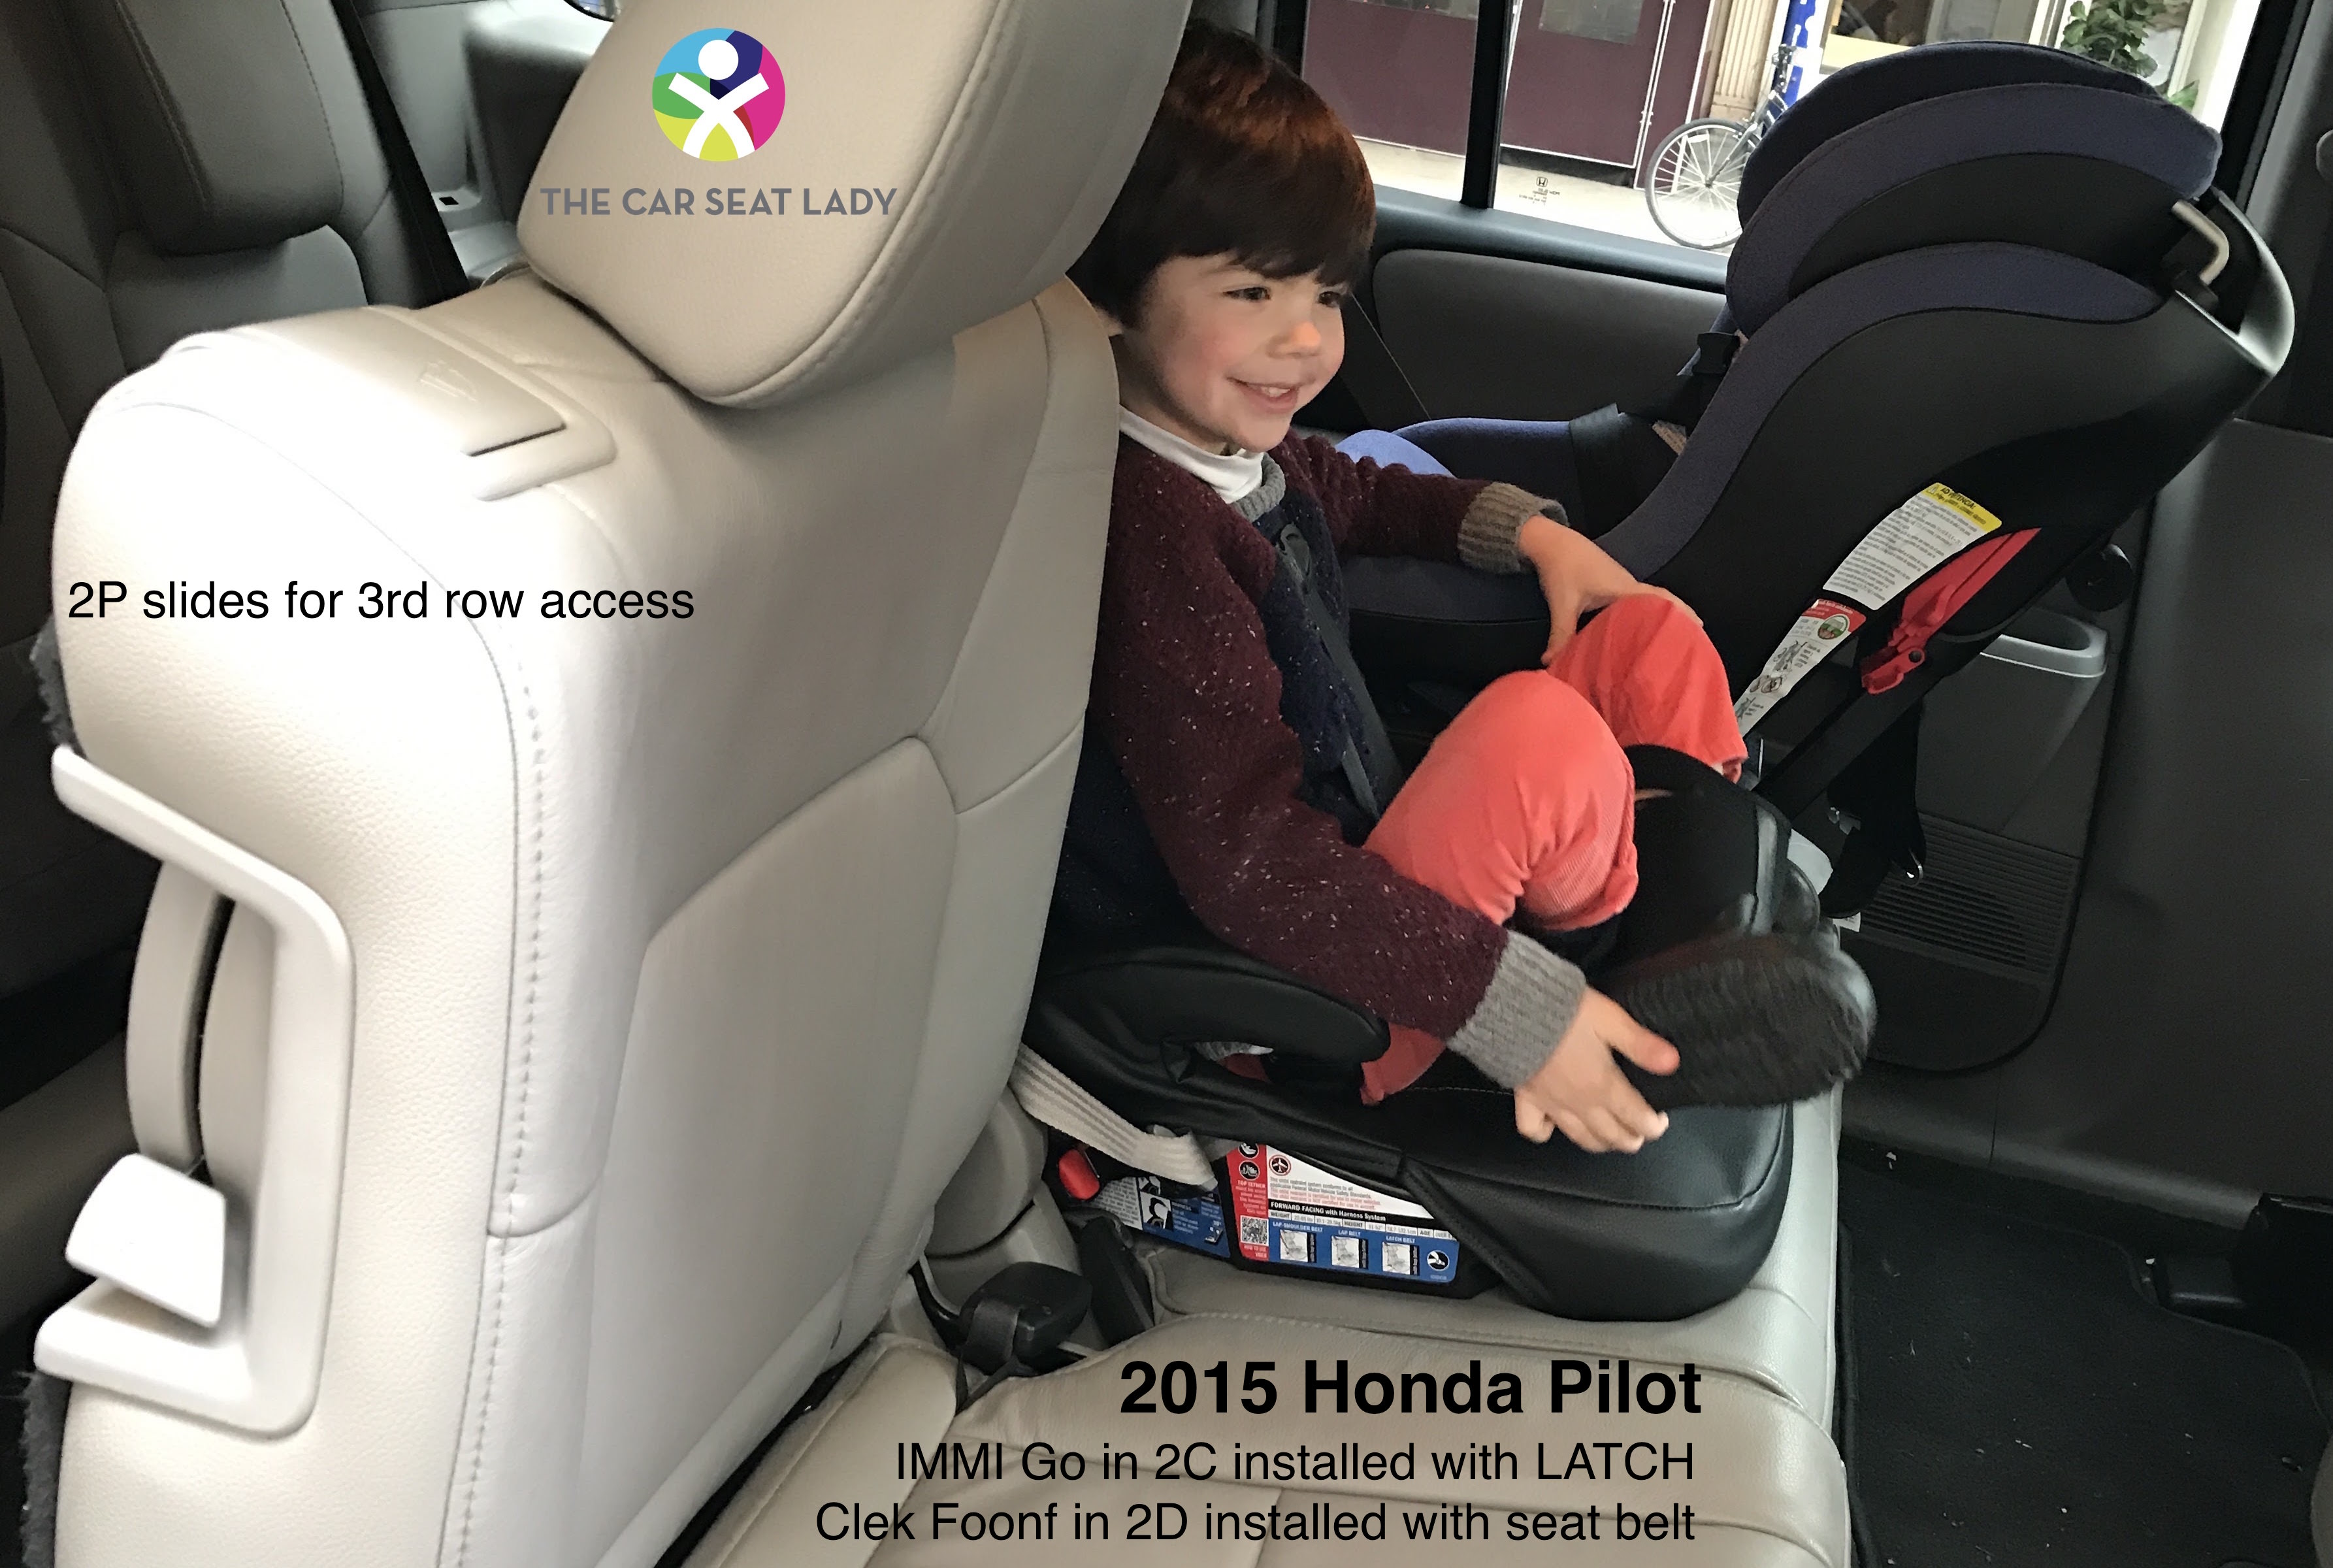 The Car Seat LadyHonda Pilot  The Car Seat Lady